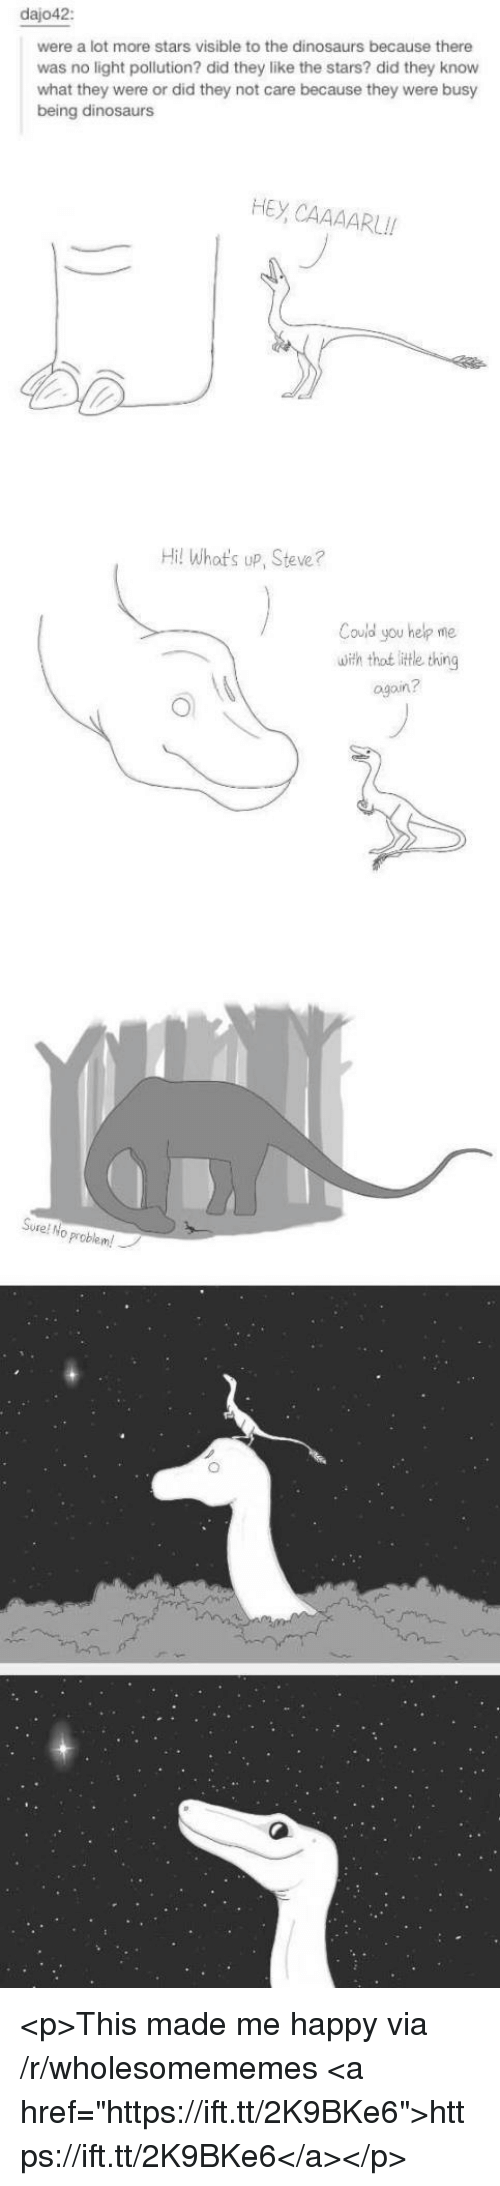 """Thot, Dinosaurs, and Happy: dajo42  were a lot more stars visible to the dinosaurs because there  was no light pollution? did they like the stars? did they know  what they were or did they not care because they were busy  being dinosaurs  HEY CAAAARUII  Hil Whot's up, Steve?  Could you help me  uith thot little thing  agoin?  Sure! No problem! <p>This made me happy via /r/wholesomememes <a href=""""https://ift.tt/2K9BKe6"""">https://ift.tt/2K9BKe6</a></p>"""